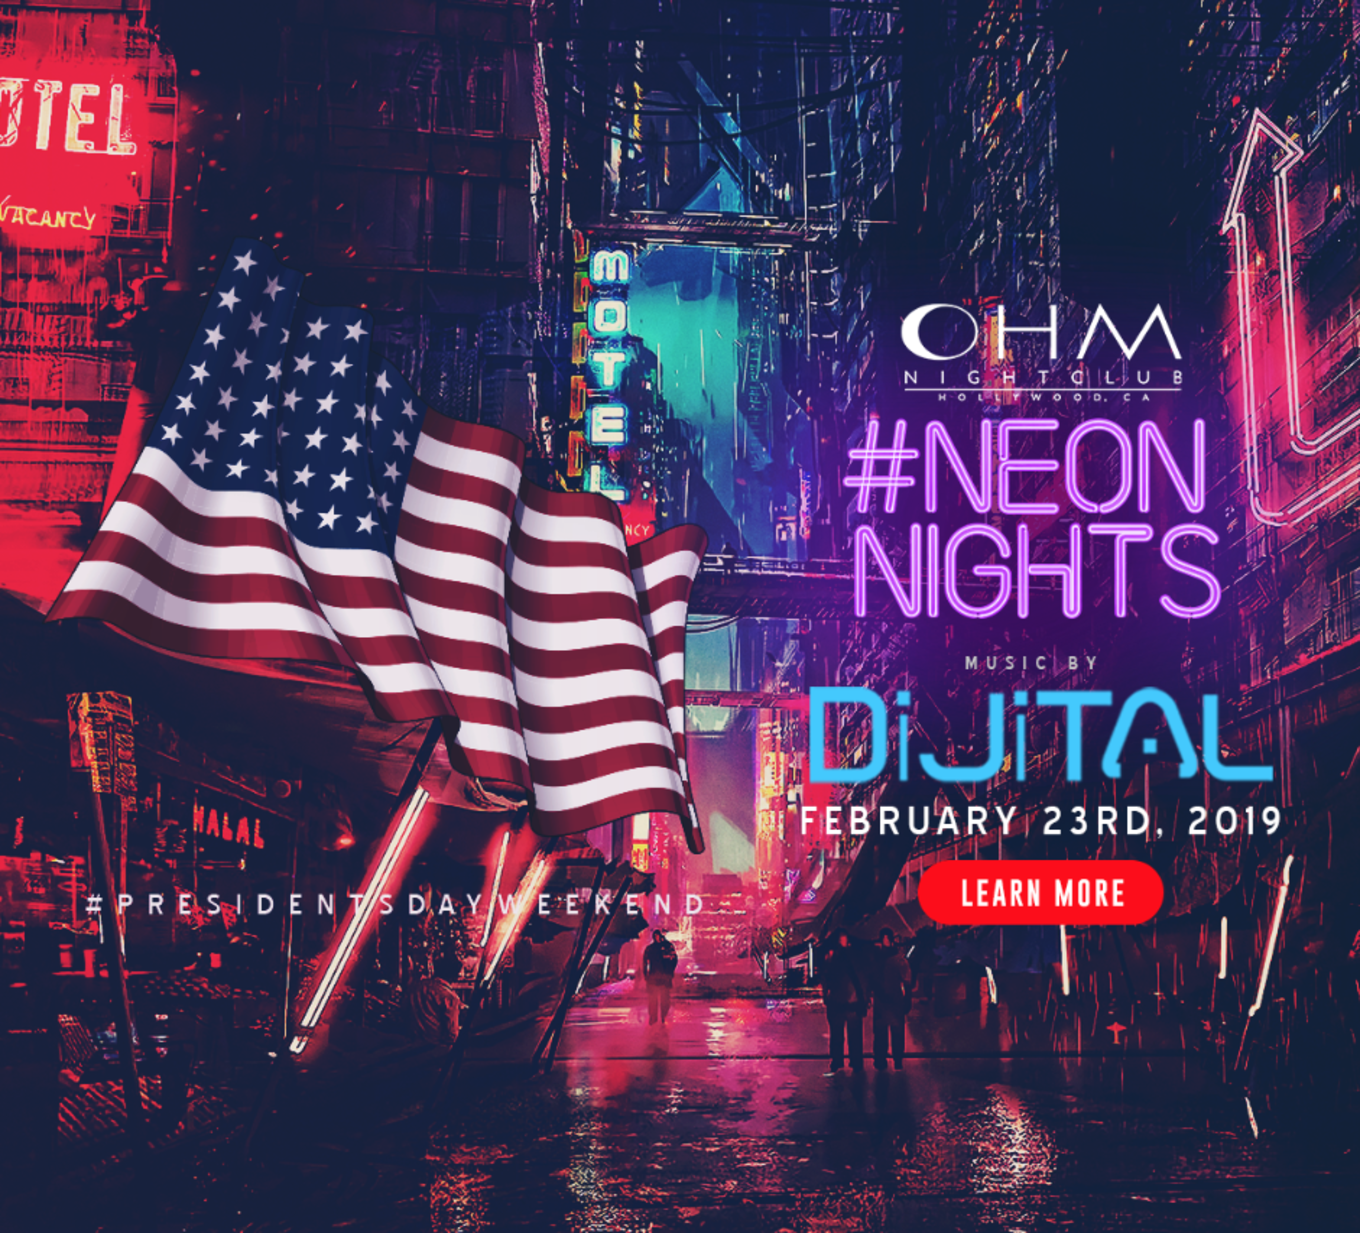 Mwwb Tour With Ohmms In February: CLUB DV8's #NeonNights With DiJiTAL